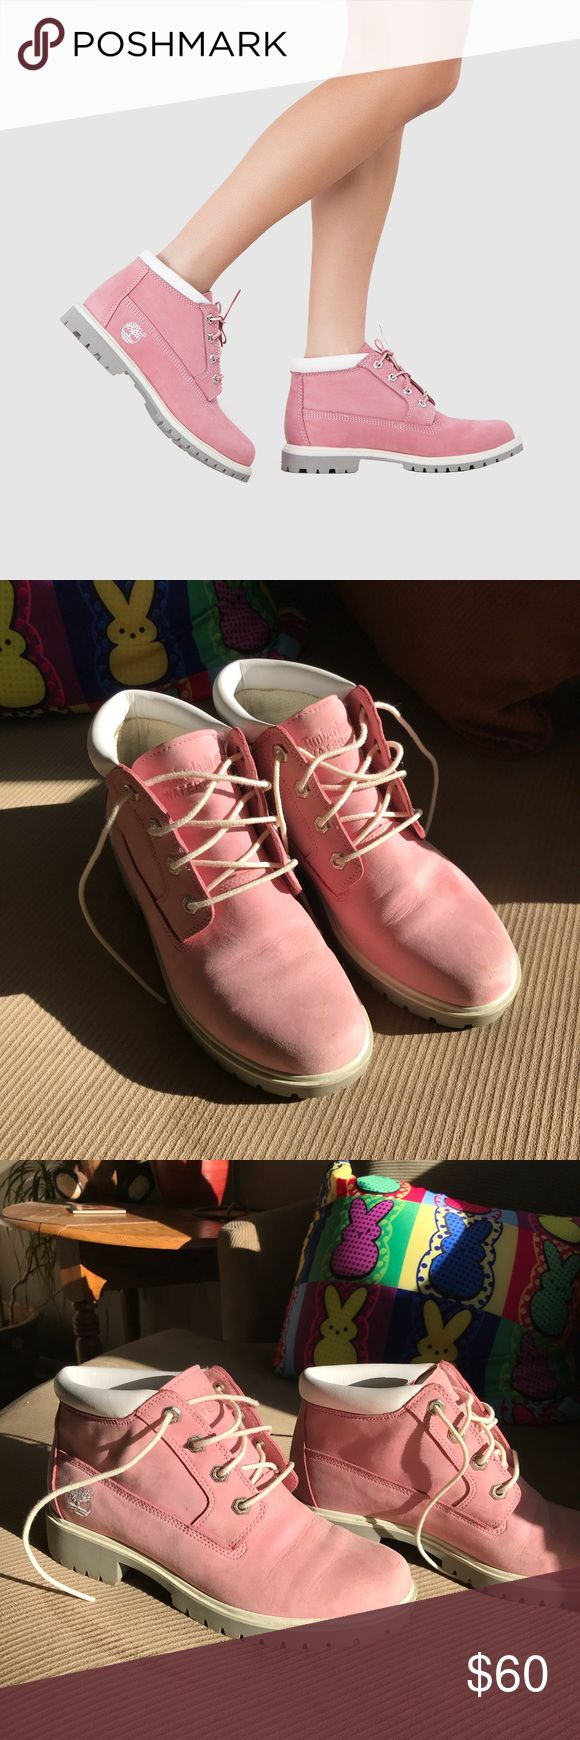 🔥Black Friday Sale🔥 Timberland Pink Nellie Boots Super cute Nellie Waterproof Chukka Timberland boots in pink nubuck. Slightly worn with a couple scuffs on the toe and a small tear on the right tongue seam – otherwise in great condition!  Feel free to message me with any questions 😊 Timberland Shoes Ankle Boots & Booties